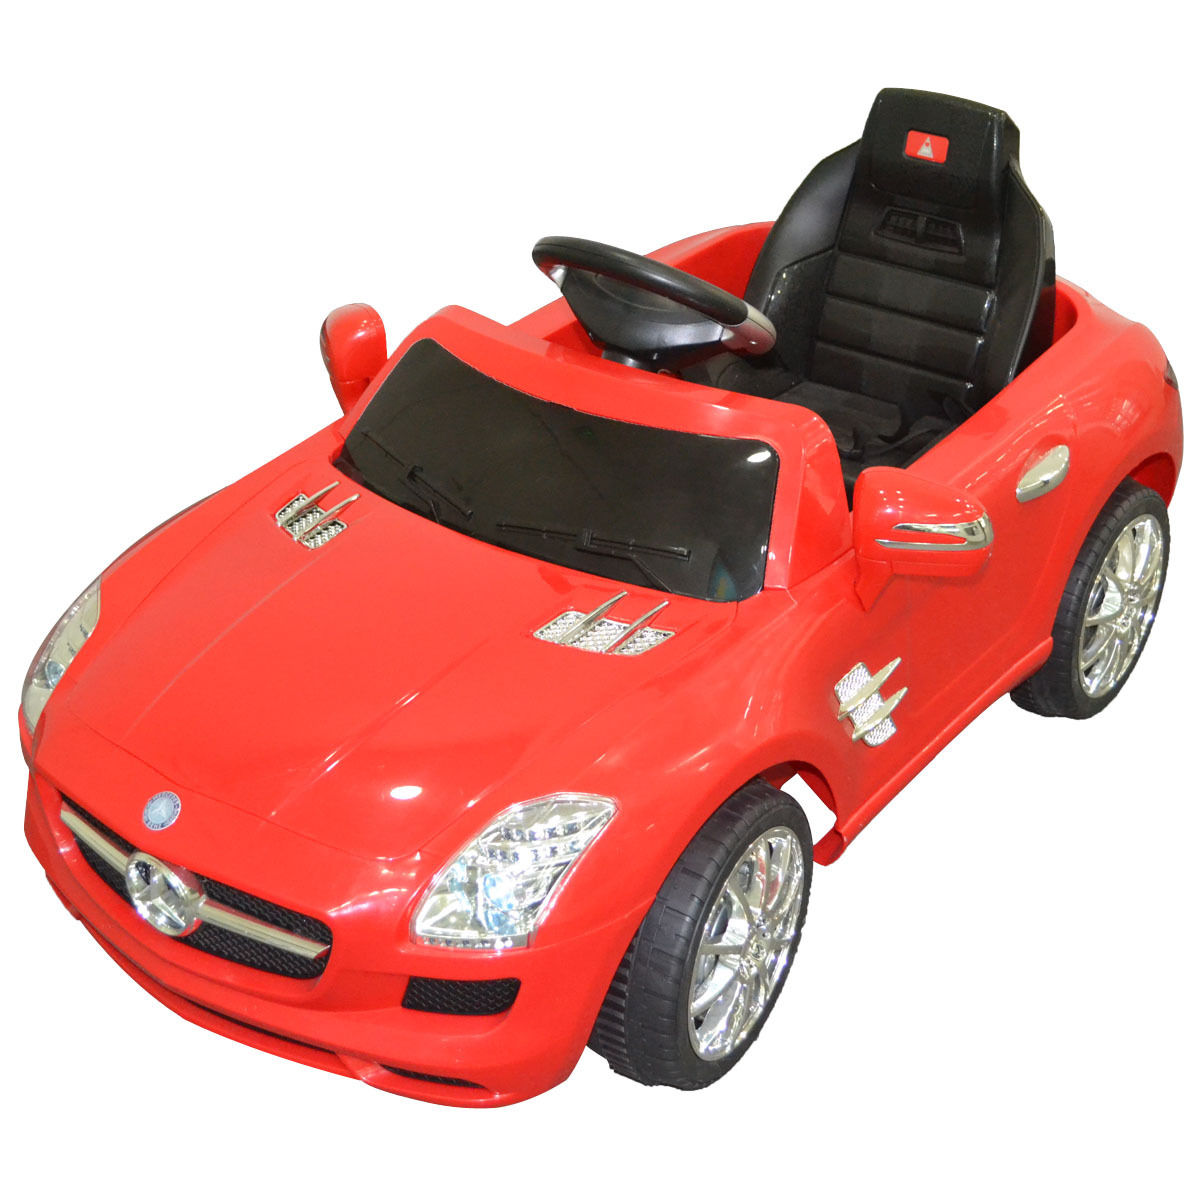 Costway Mercedes Benz Sls R C Mp3 Kids Ride On Car Electric Battery Toy Red Black